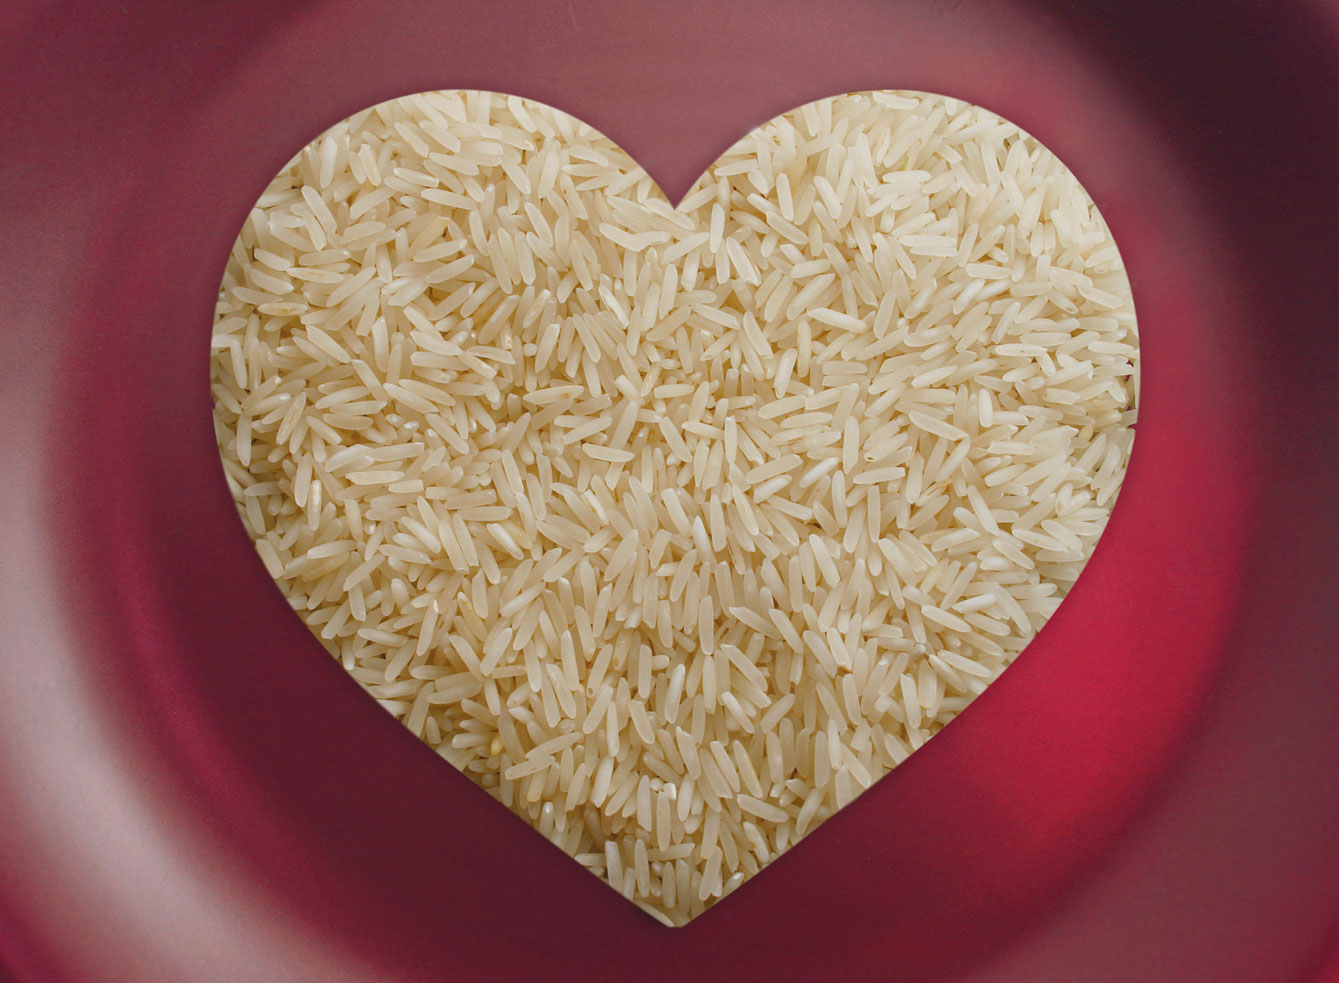 Heart-shaped rice on red background